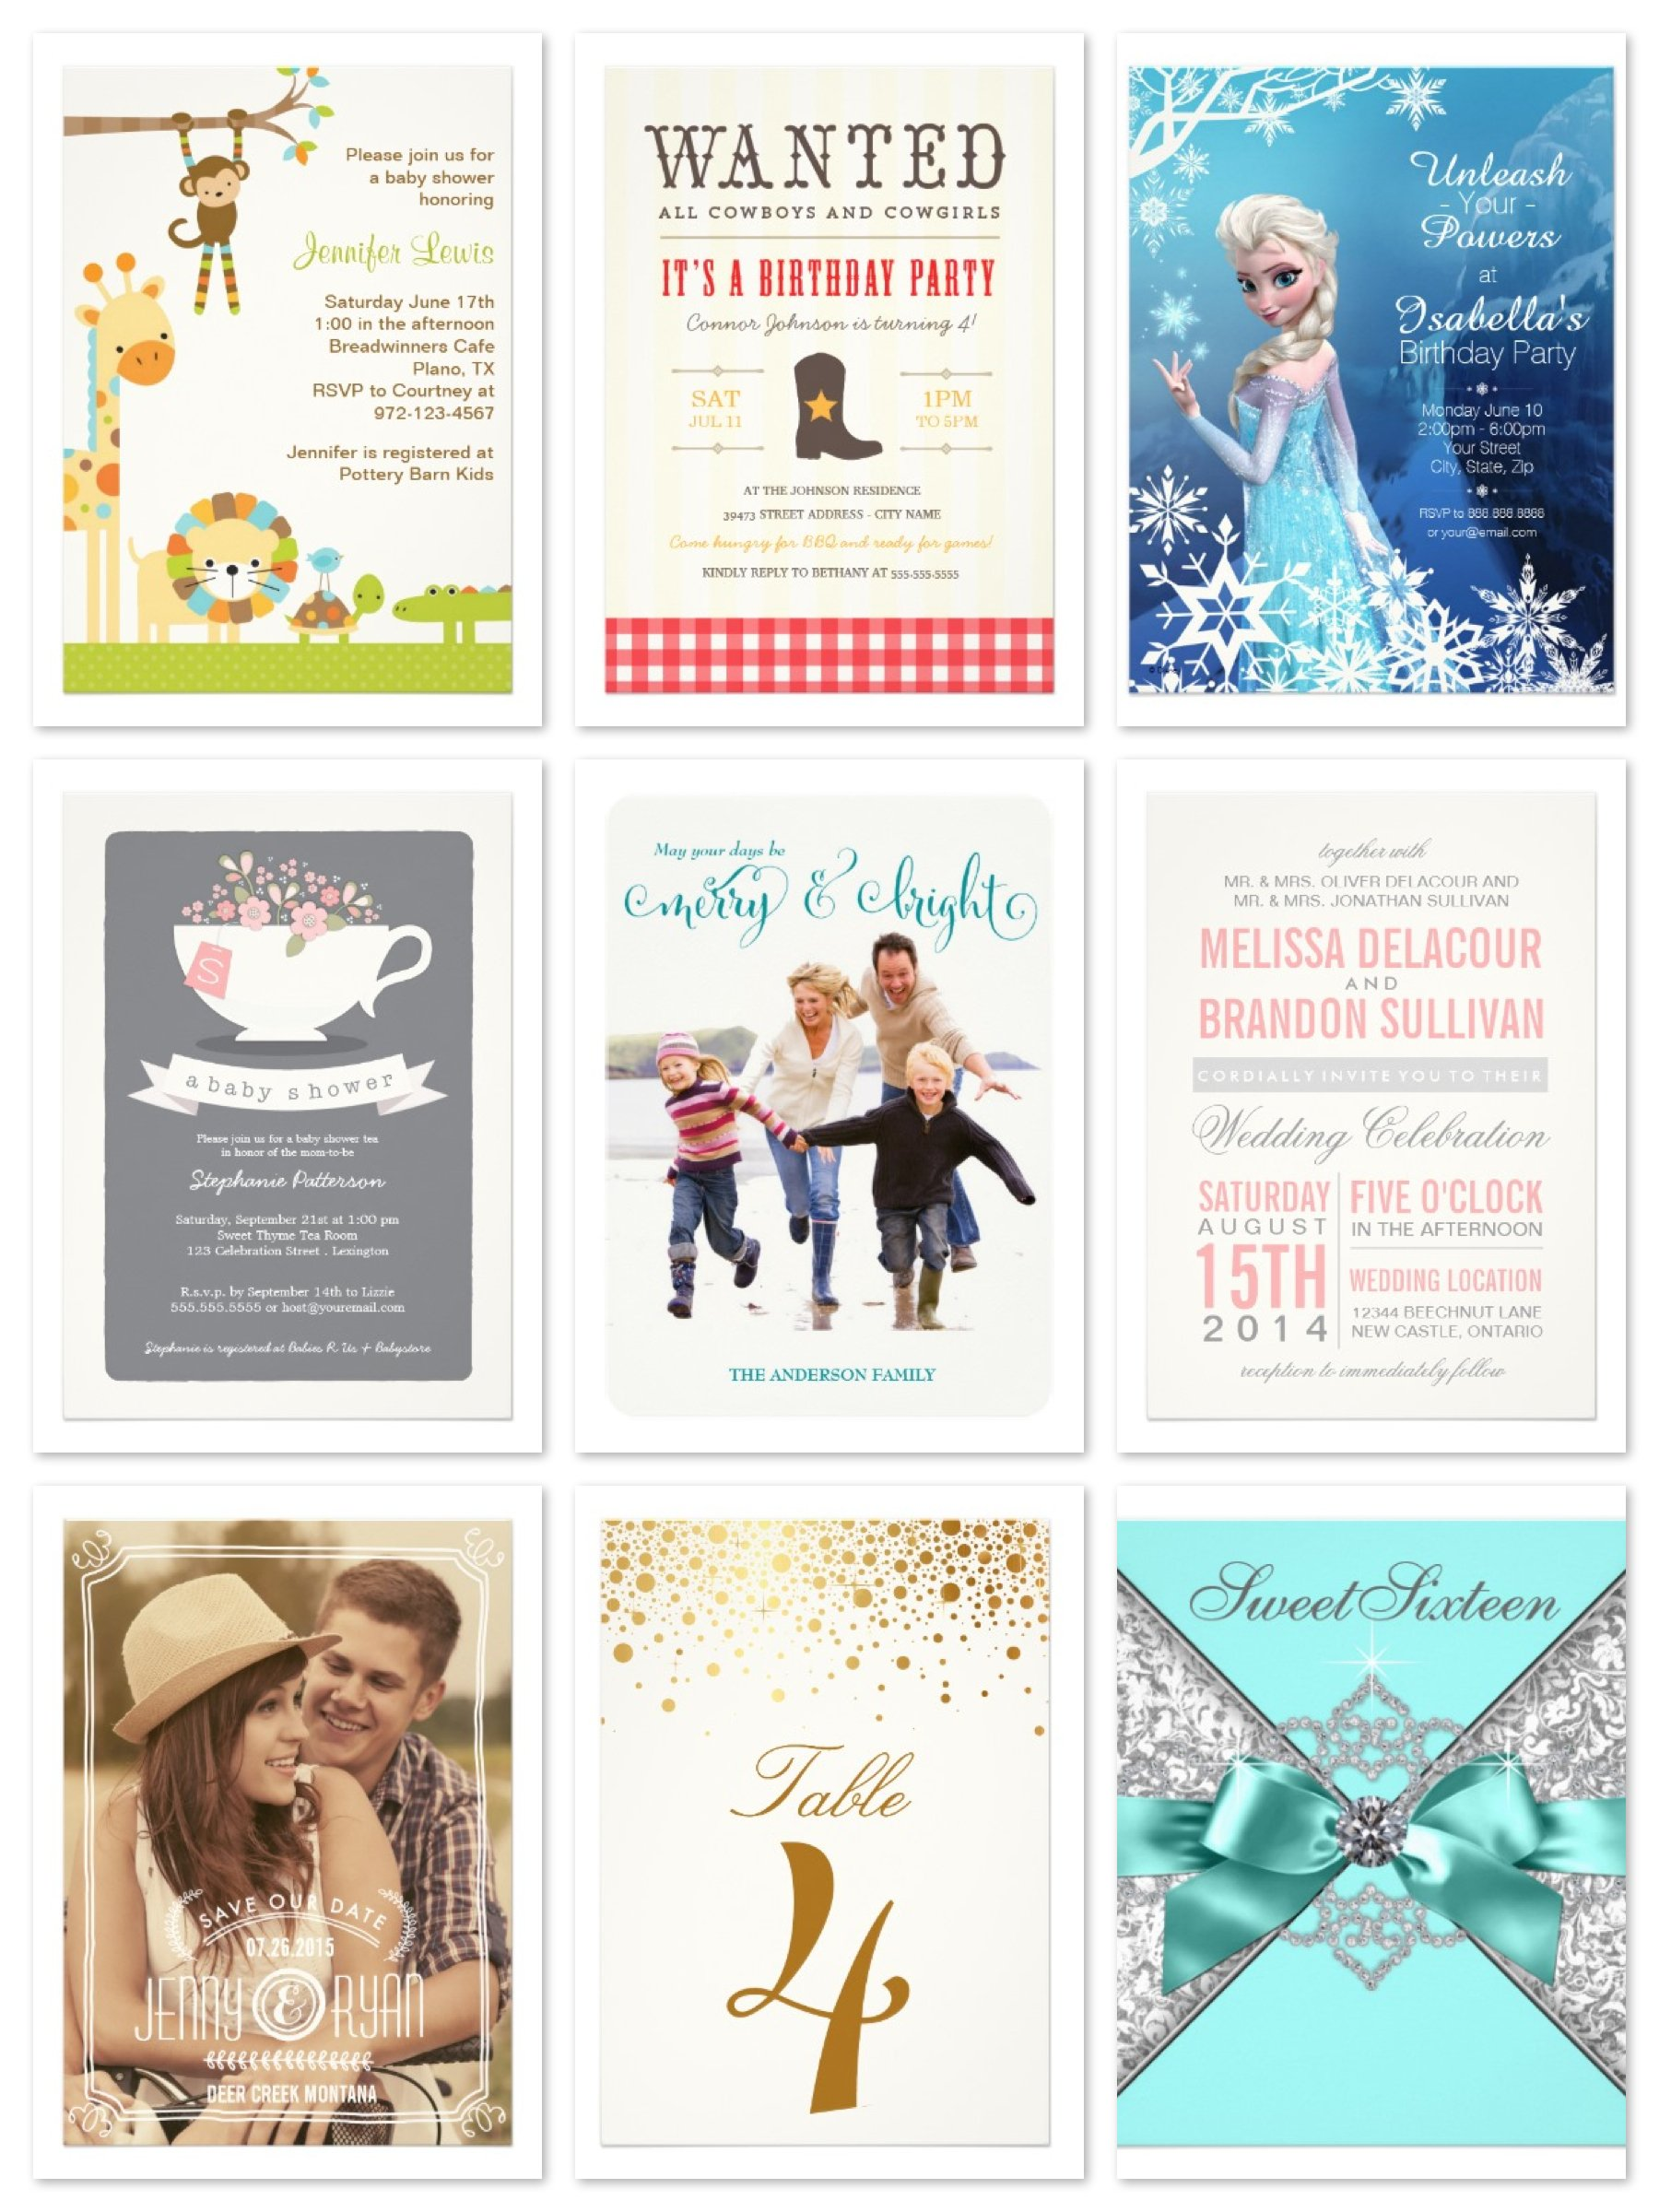 Zazzle Invitations, Cards, Table Numbers. Holiday Cards and Invitations on Sale